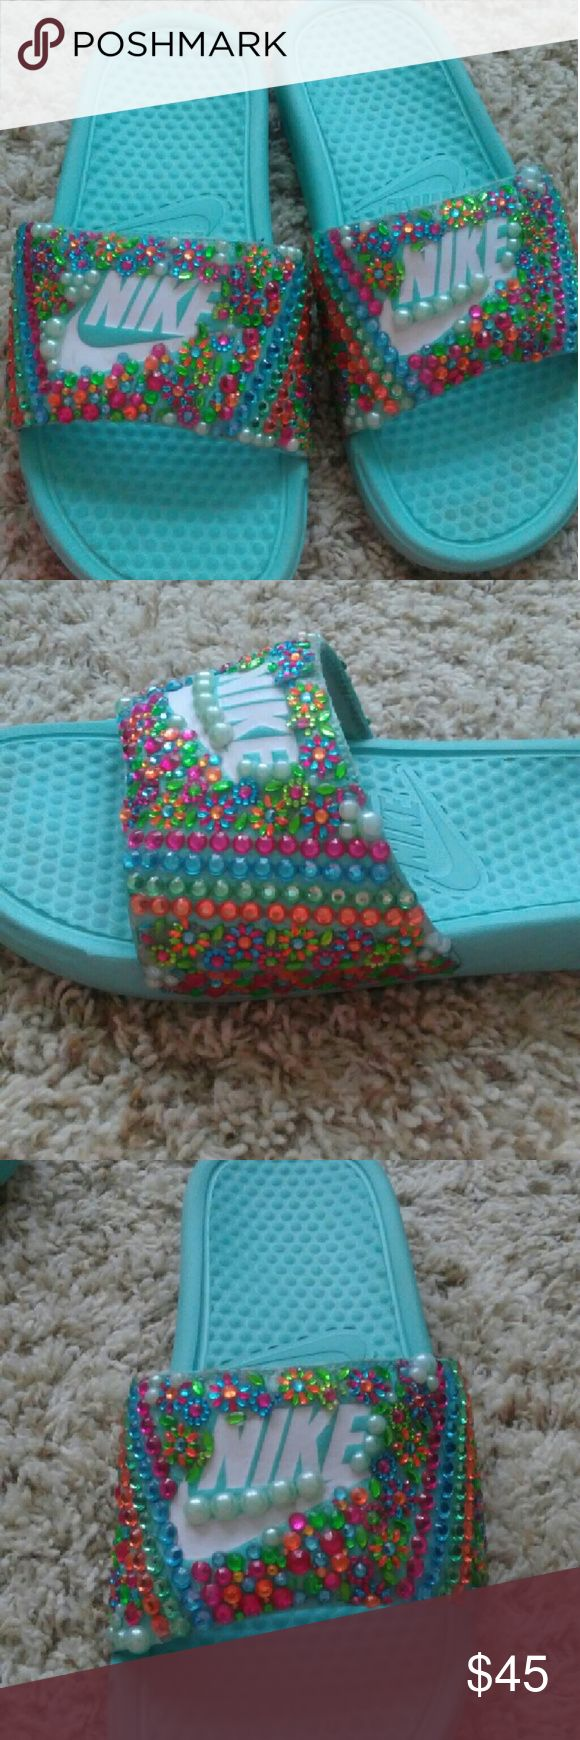 Custom Nike slides Very pretty nike slides with intricate design Nike Shoes Slippers